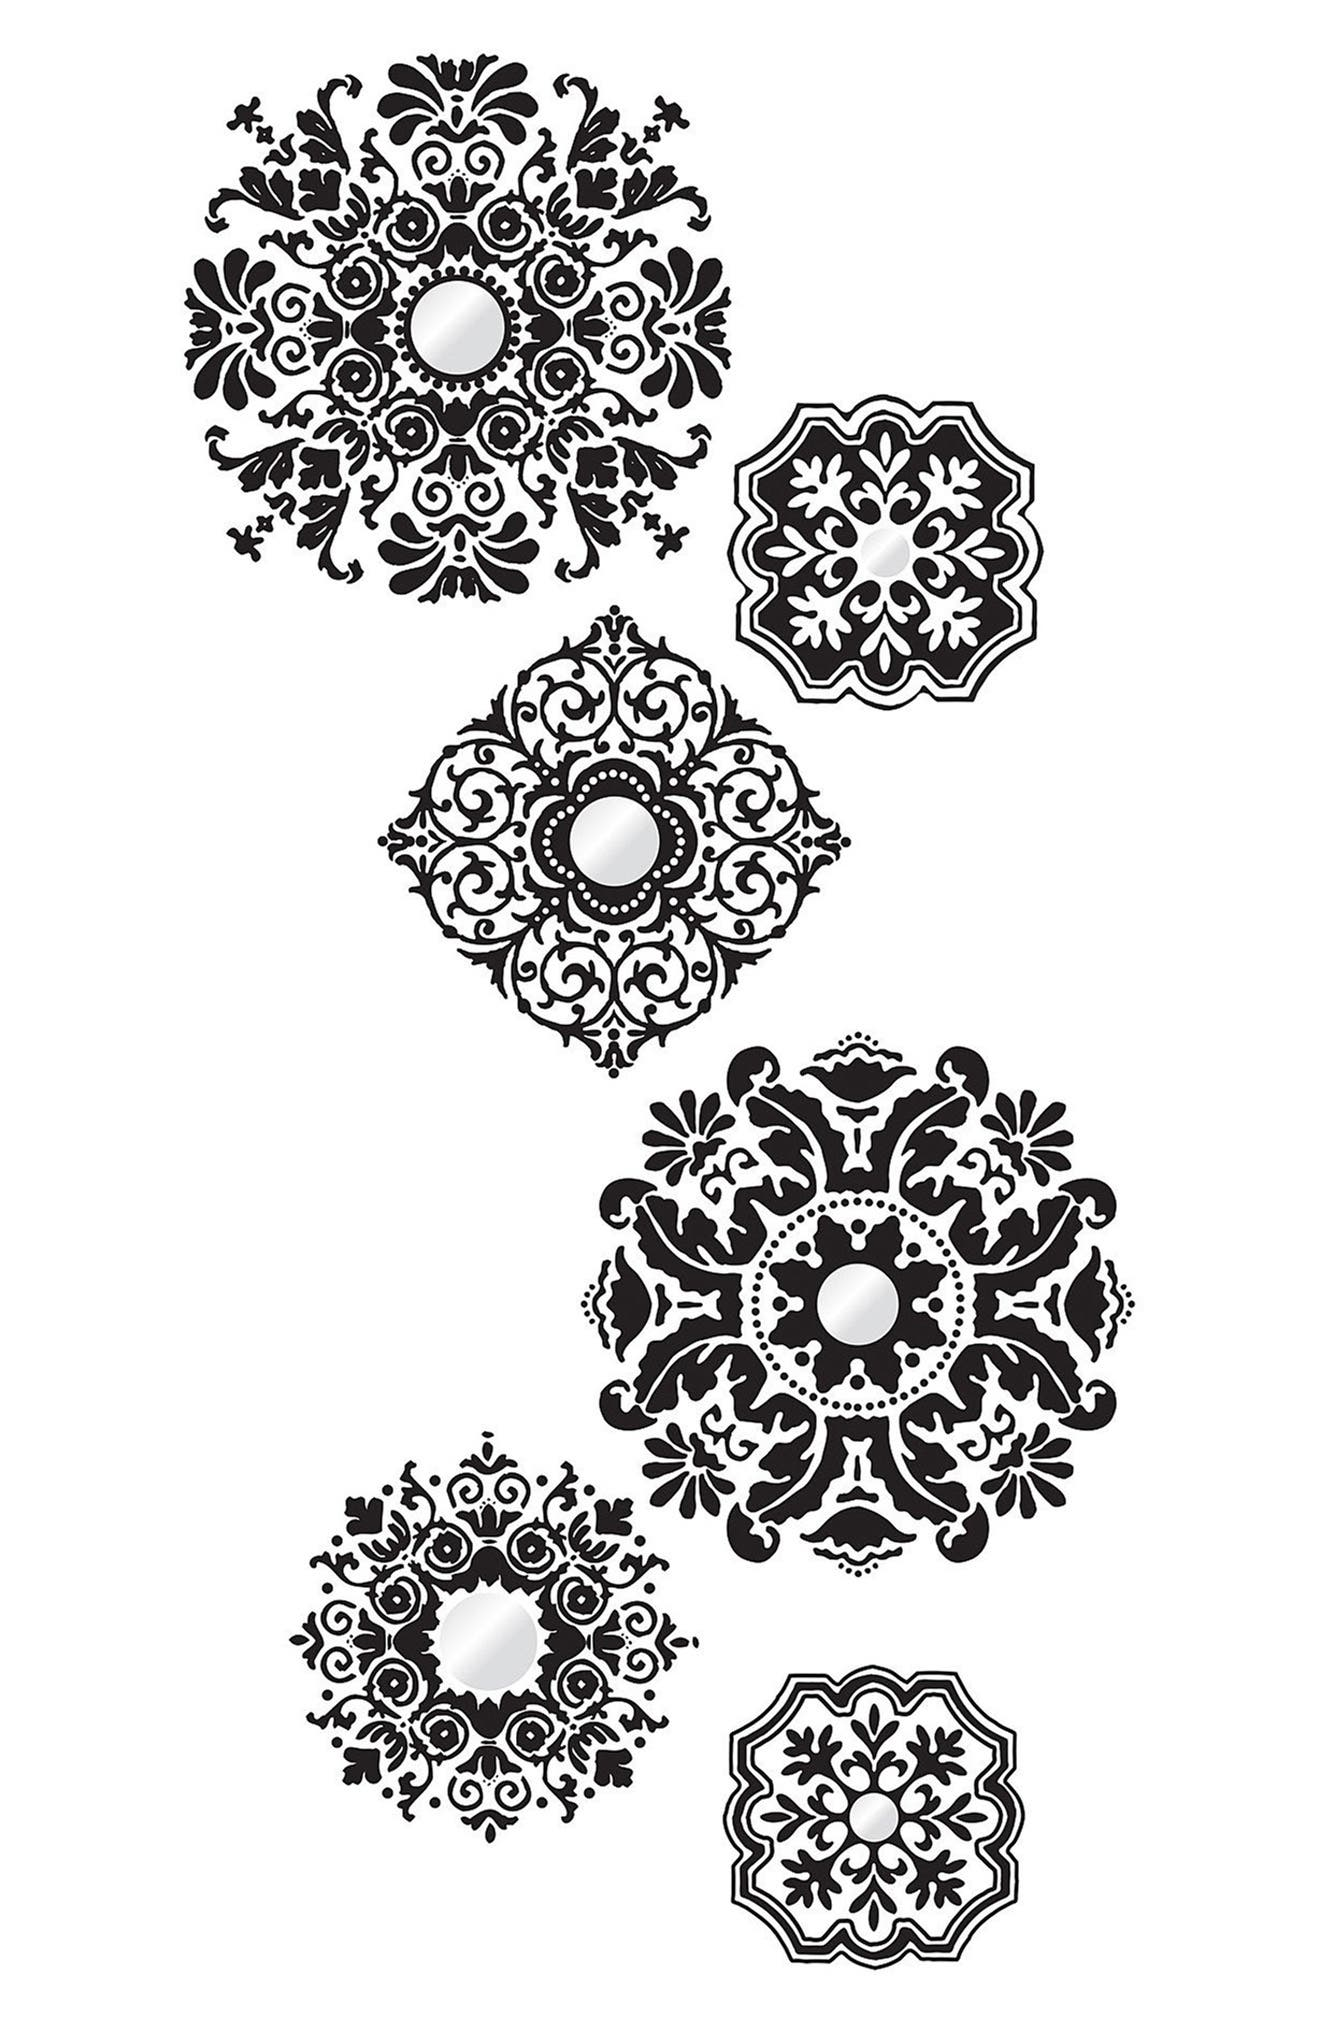 Alternate Image 1 Selected - Wallpops Baroque 6-Piece Wall Art Decal Set